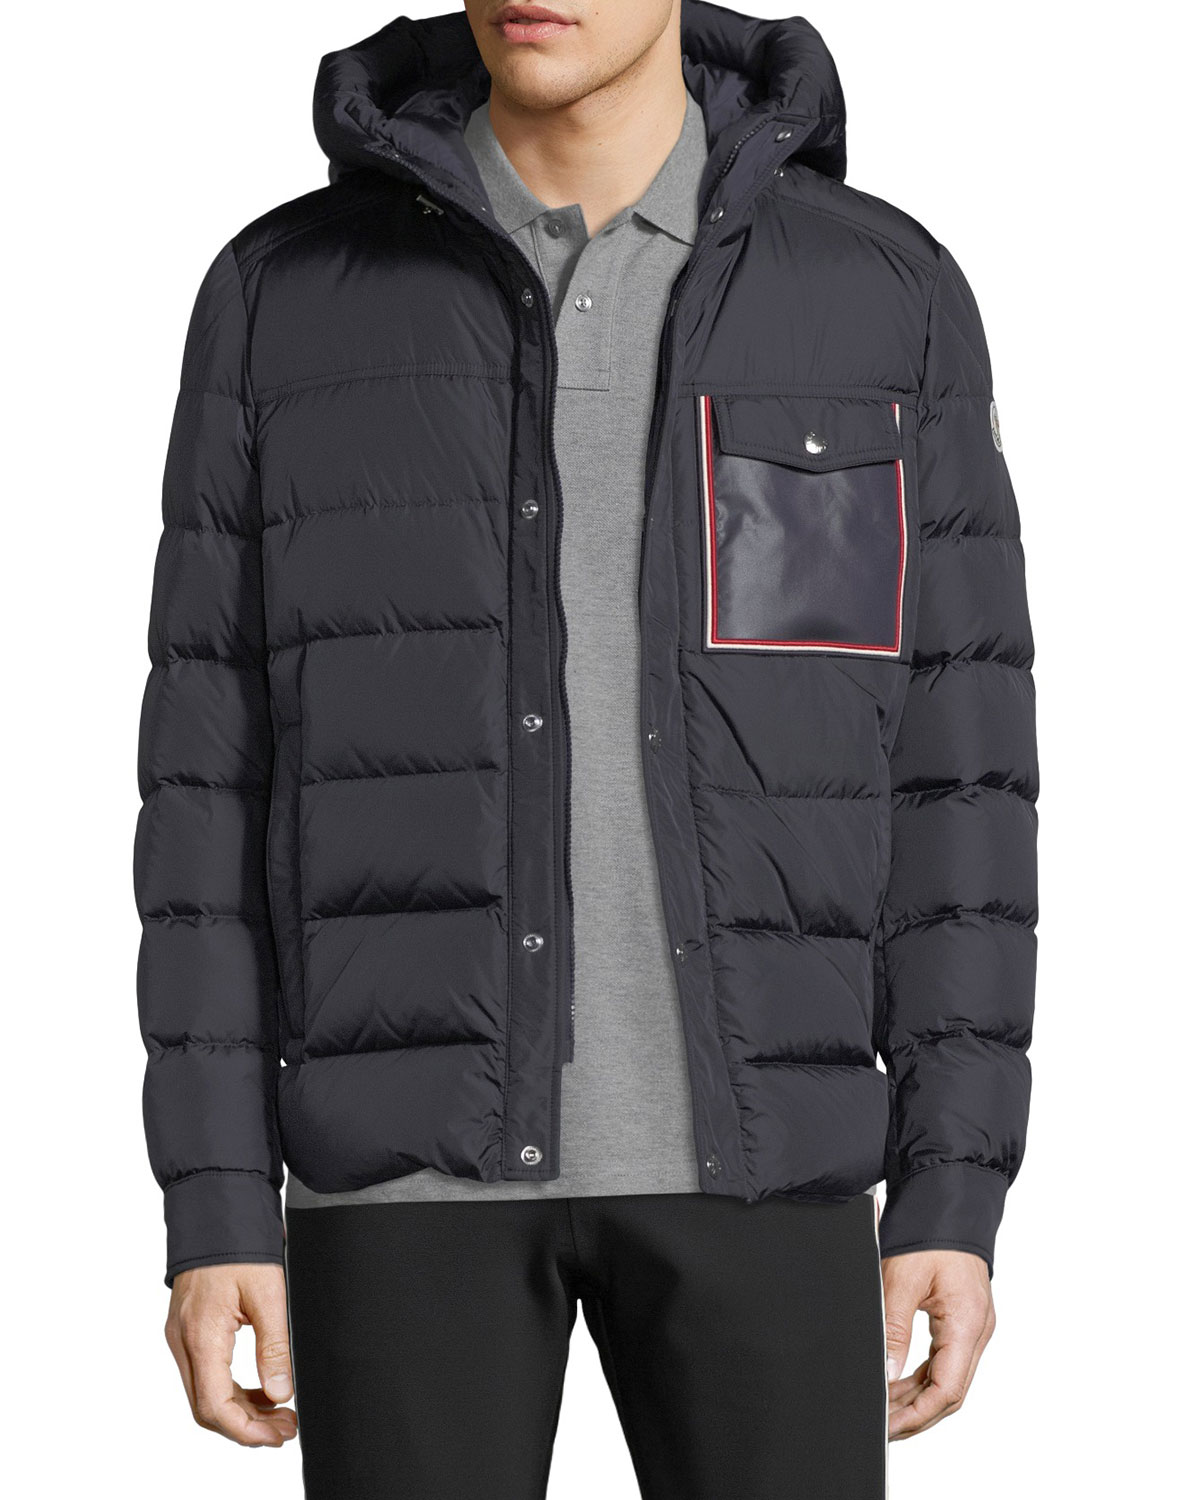 8138d1a204ea Moncler Men s Prevot Hooded Puffer Jacket with Pocket